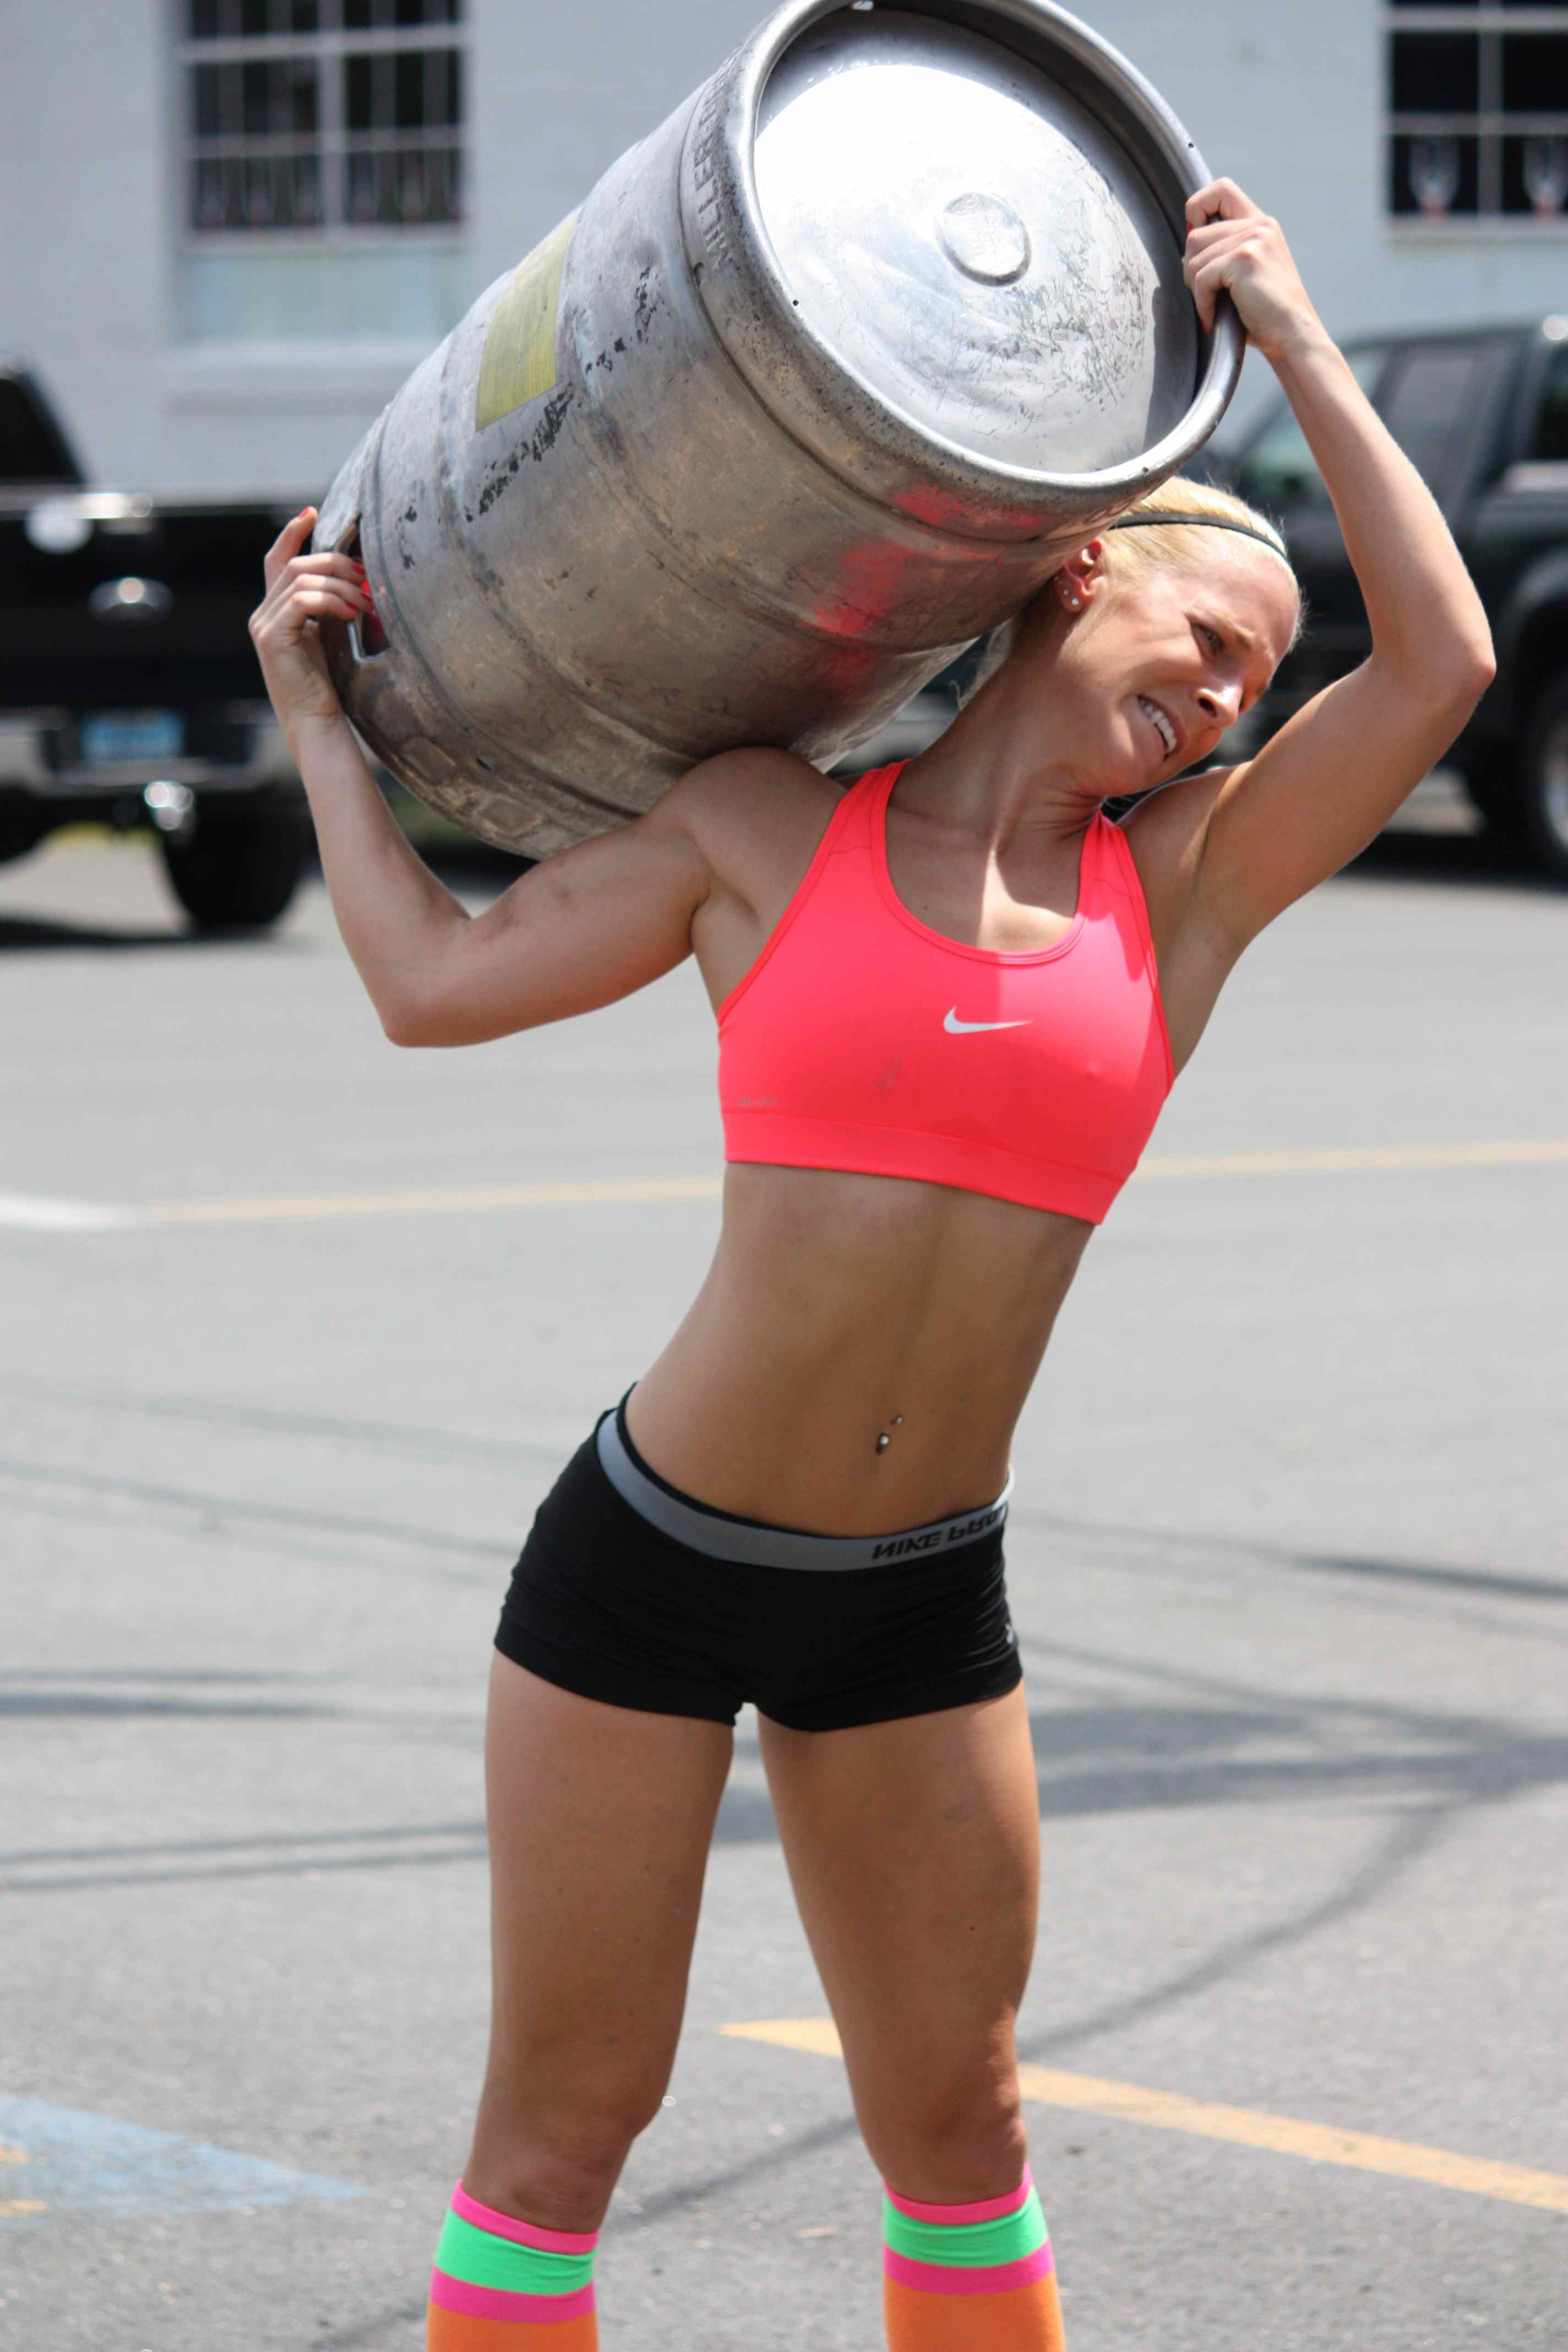 Why Women Should Lift Heavy